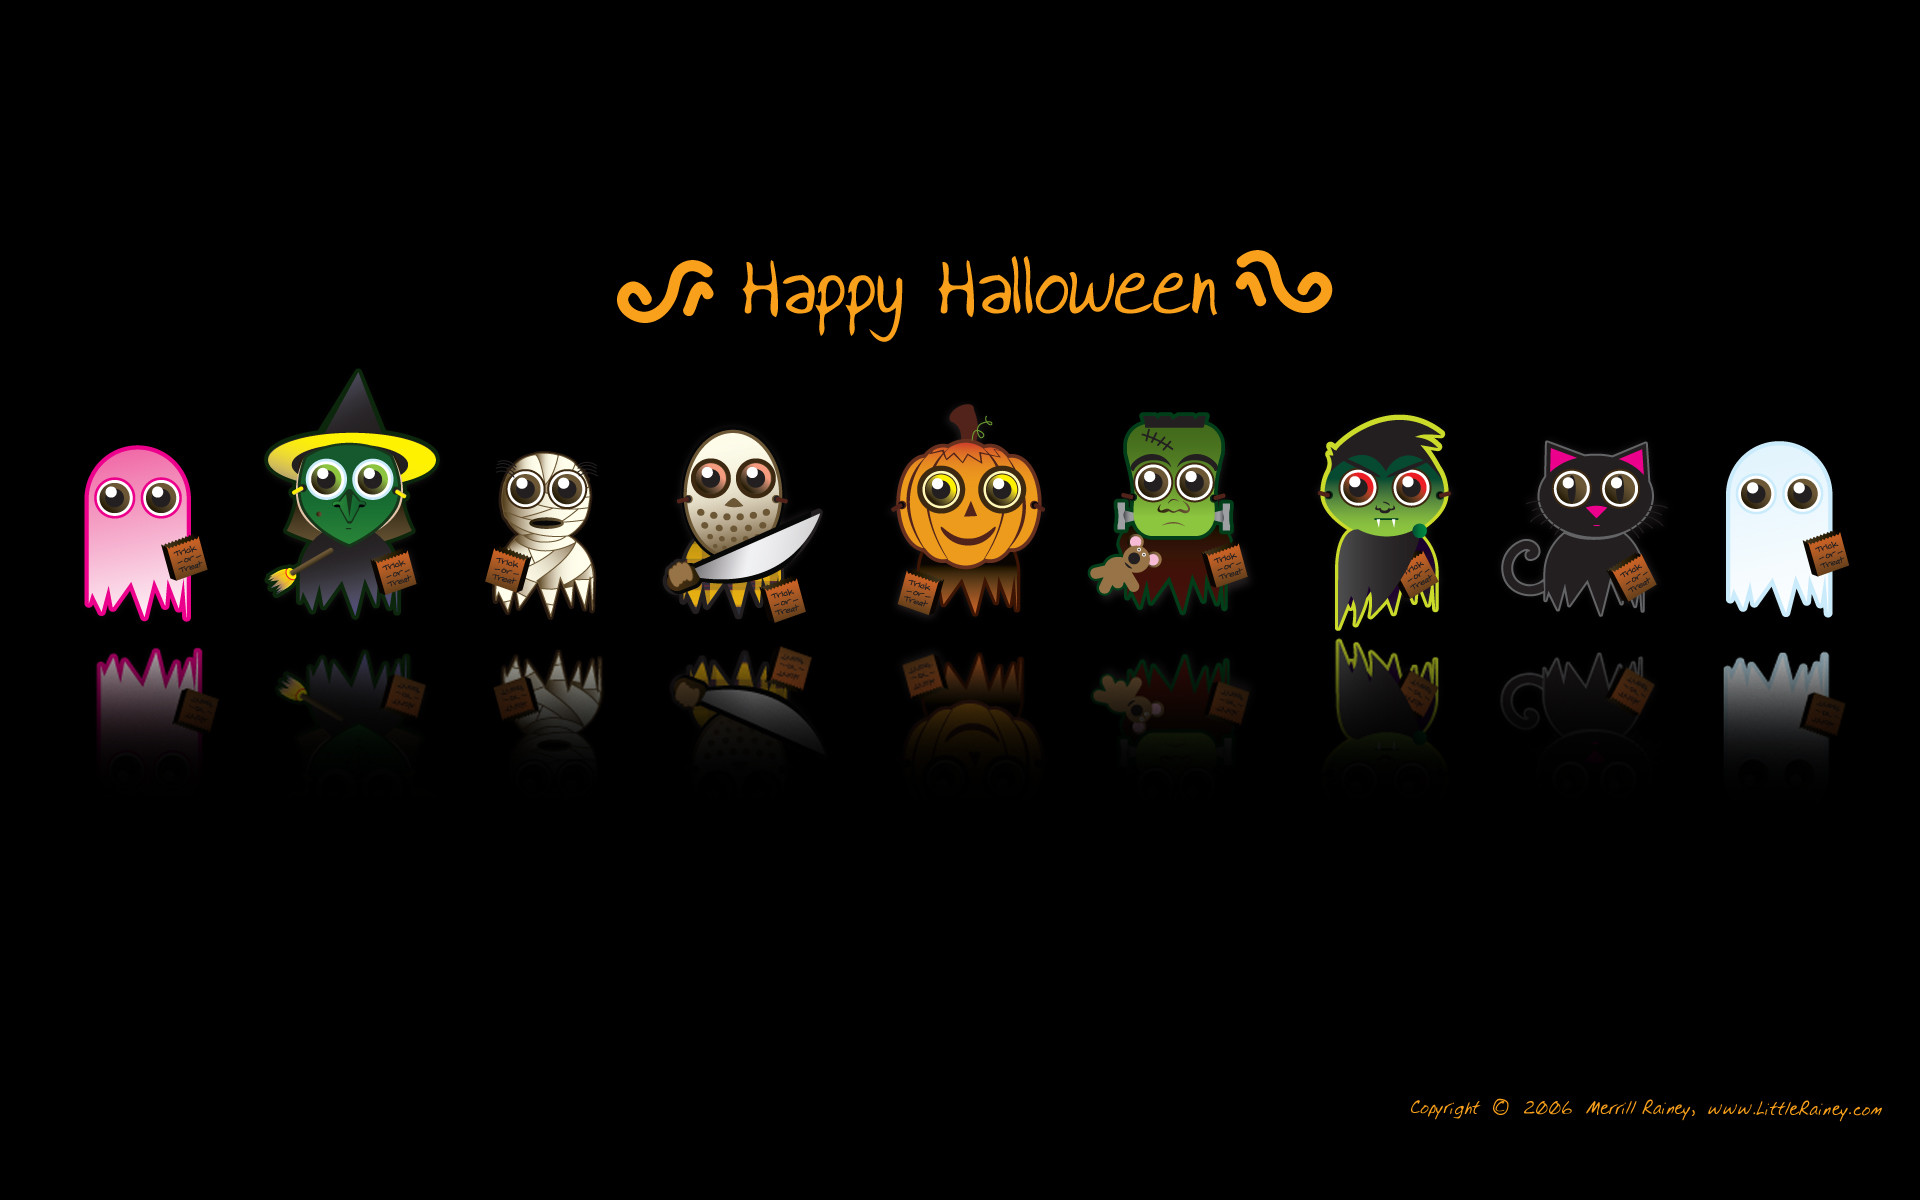 Wallpapers desktop themes holidays halloween funny animated ghost .